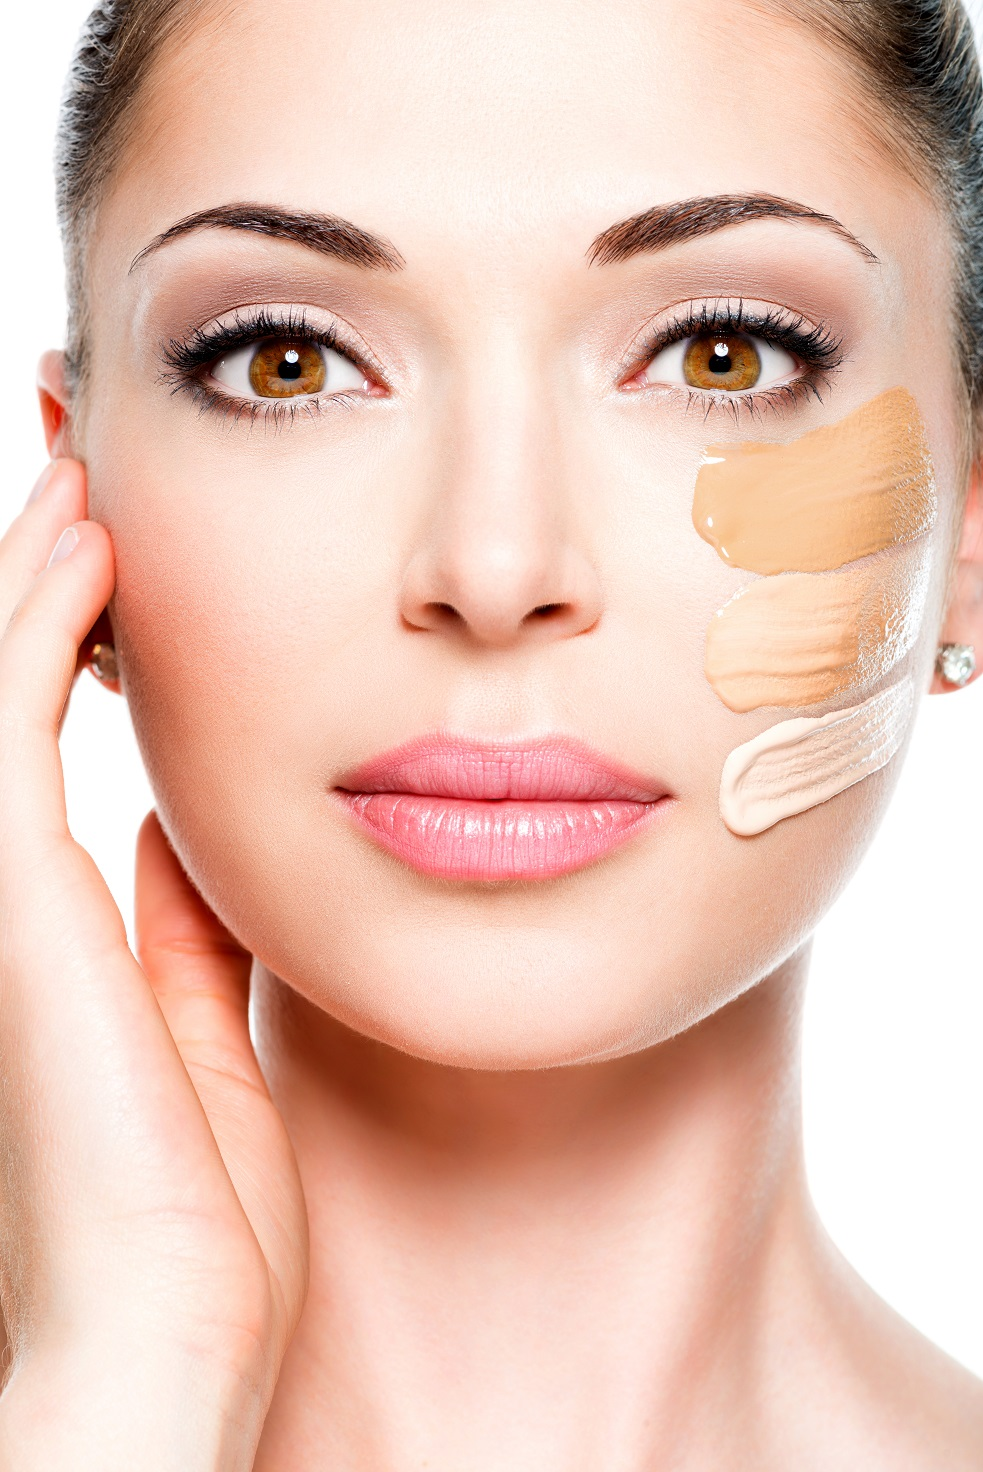 Make Up Application: Top 5 Makeup Mistakes To Avoid At All Cost!